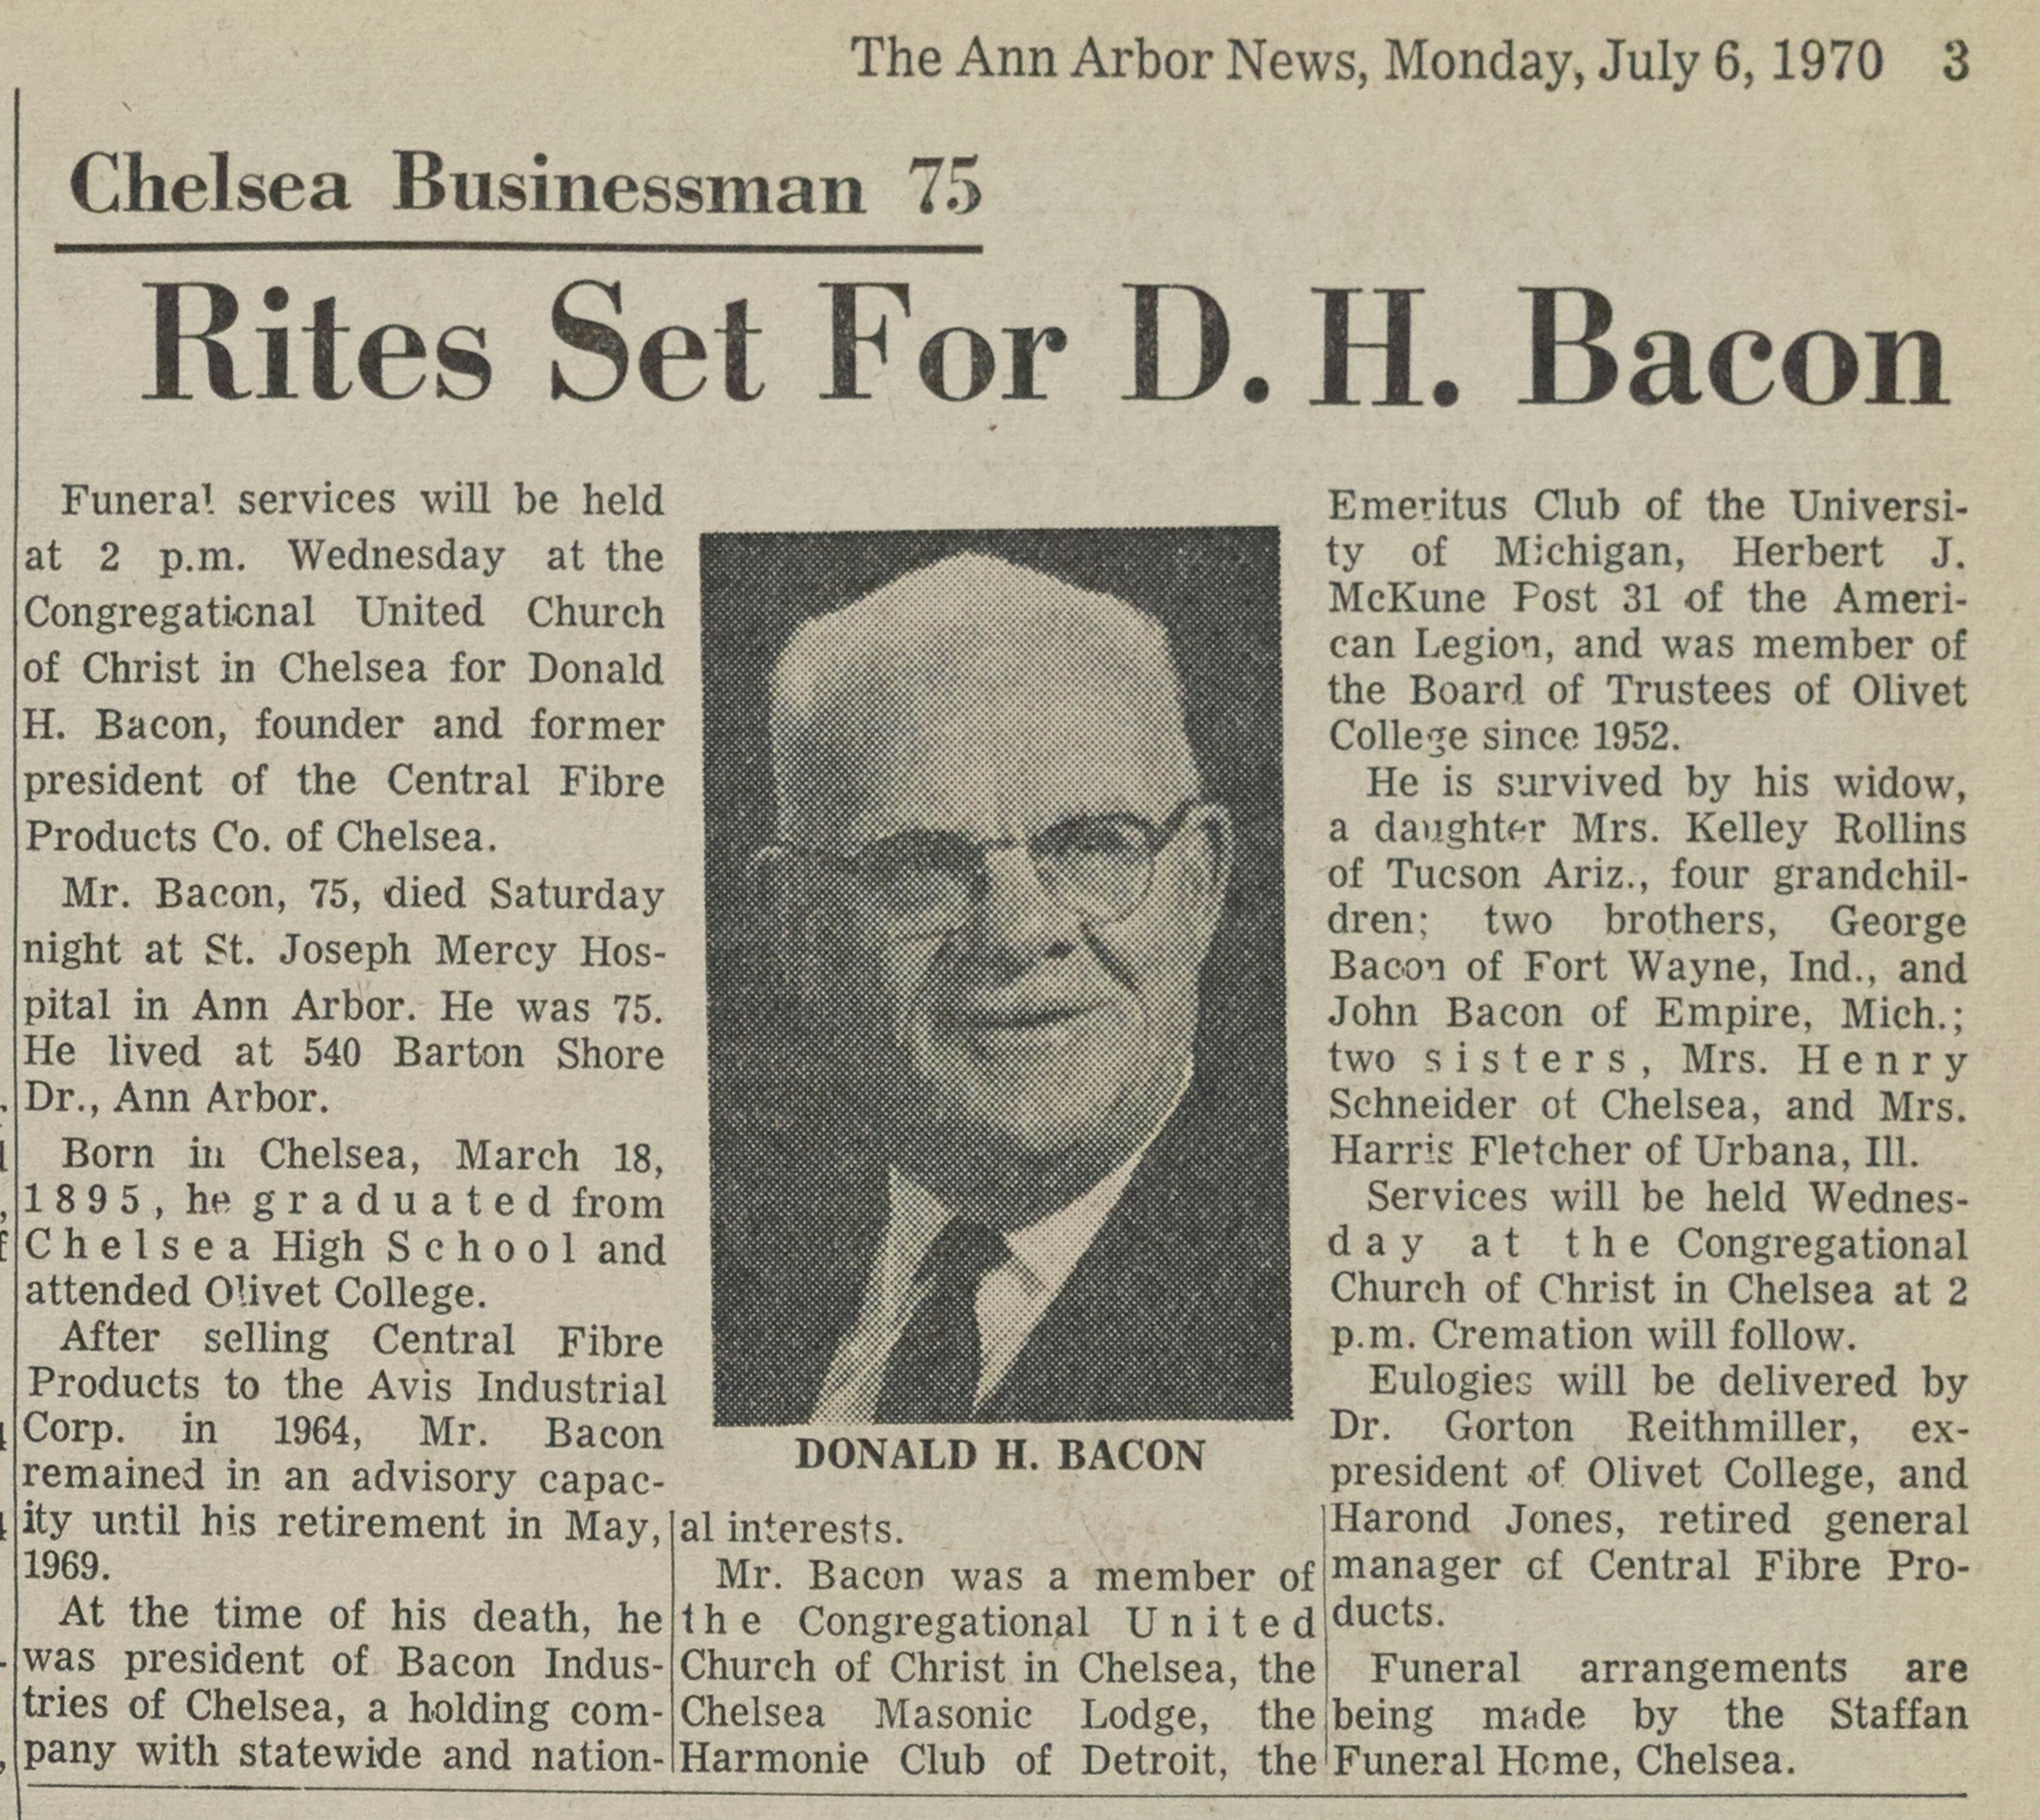 Rites Set For D. H. Bacon image